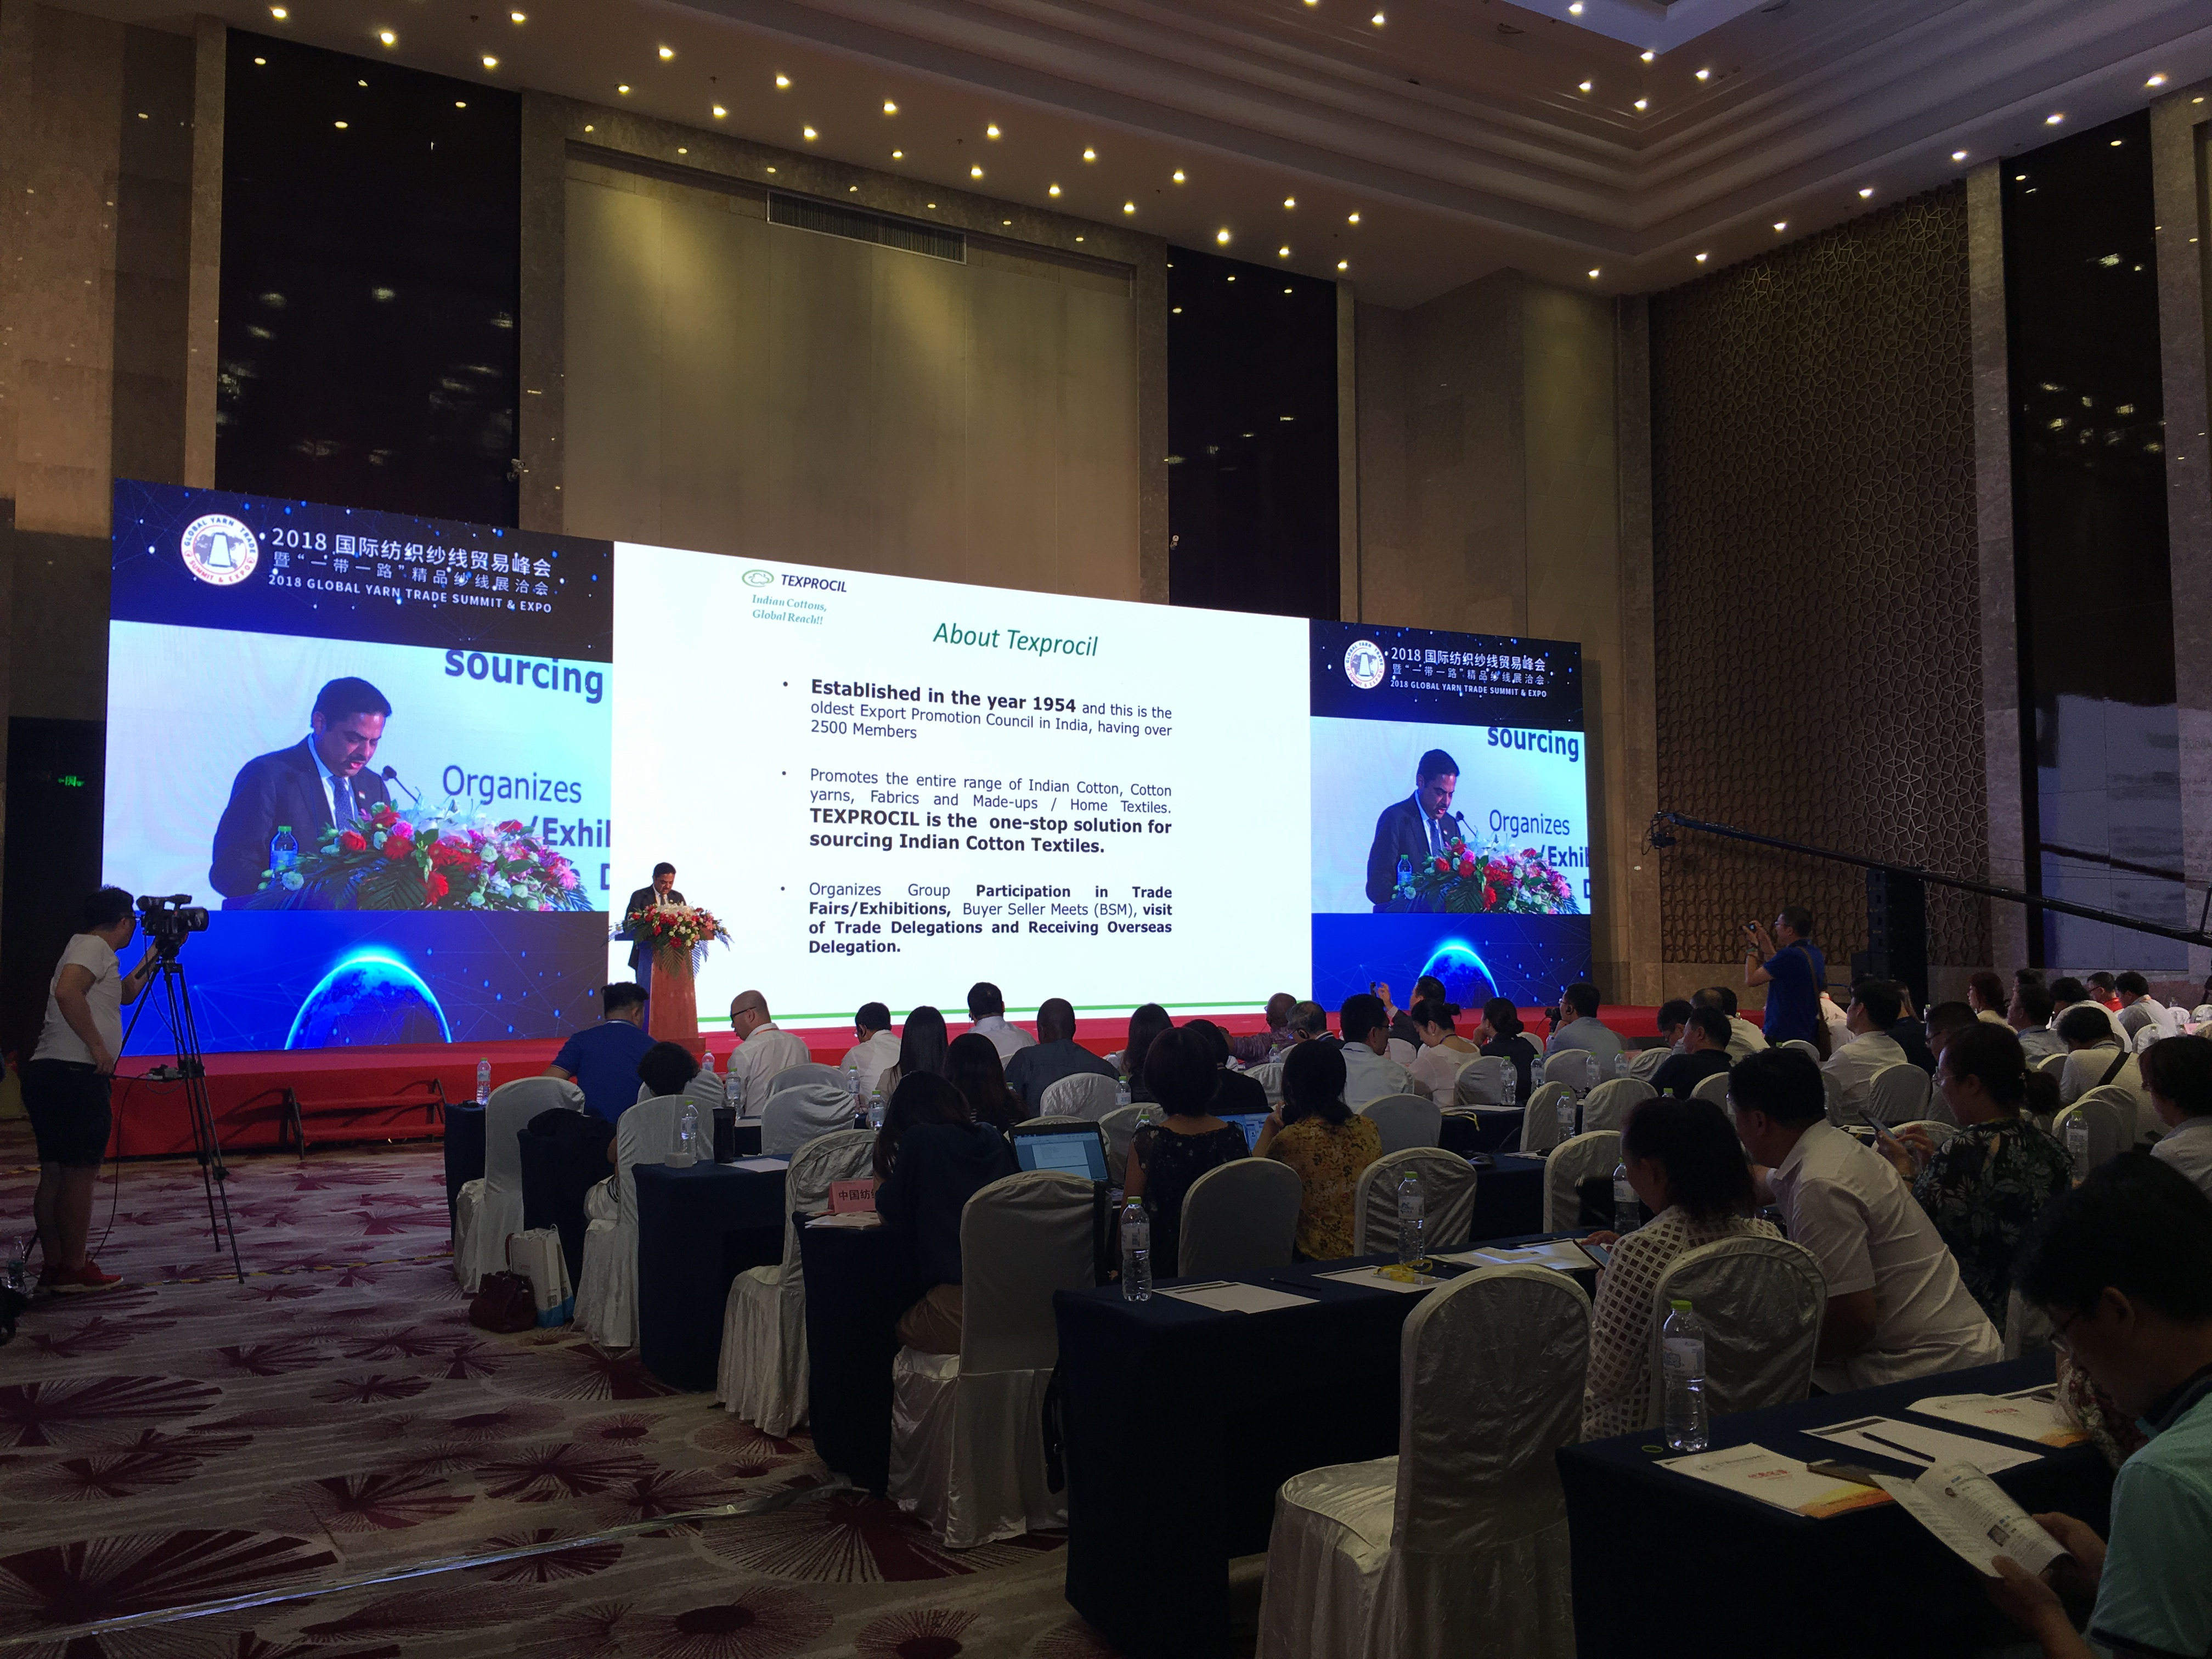 Global Yarn Trade Summit & Expo Qingdao-China 17th August 2018